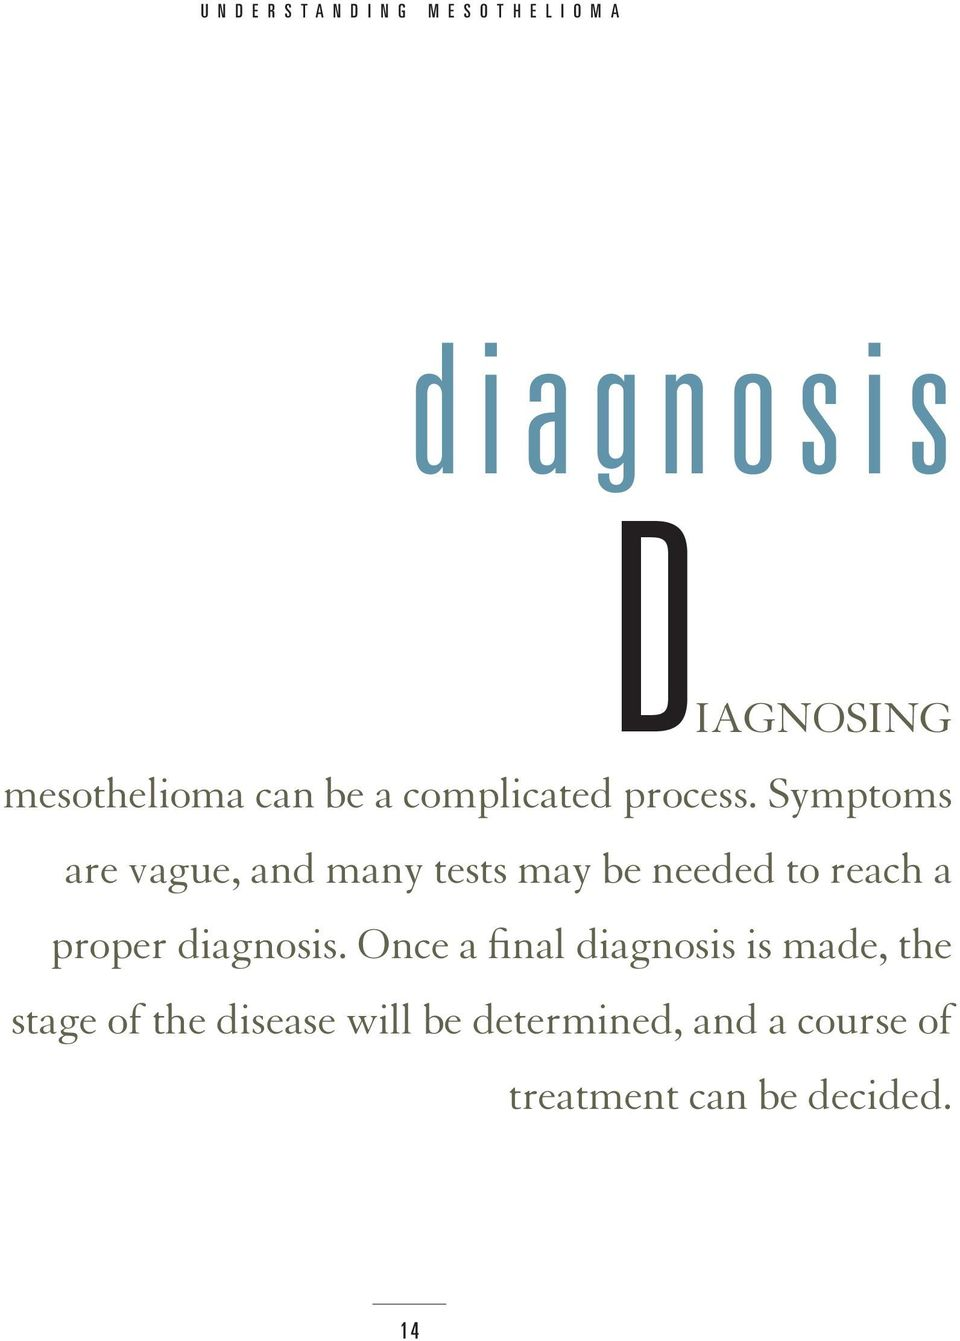 Symptoms are vague, and many tests may be needed to reach a proper diagnosis.